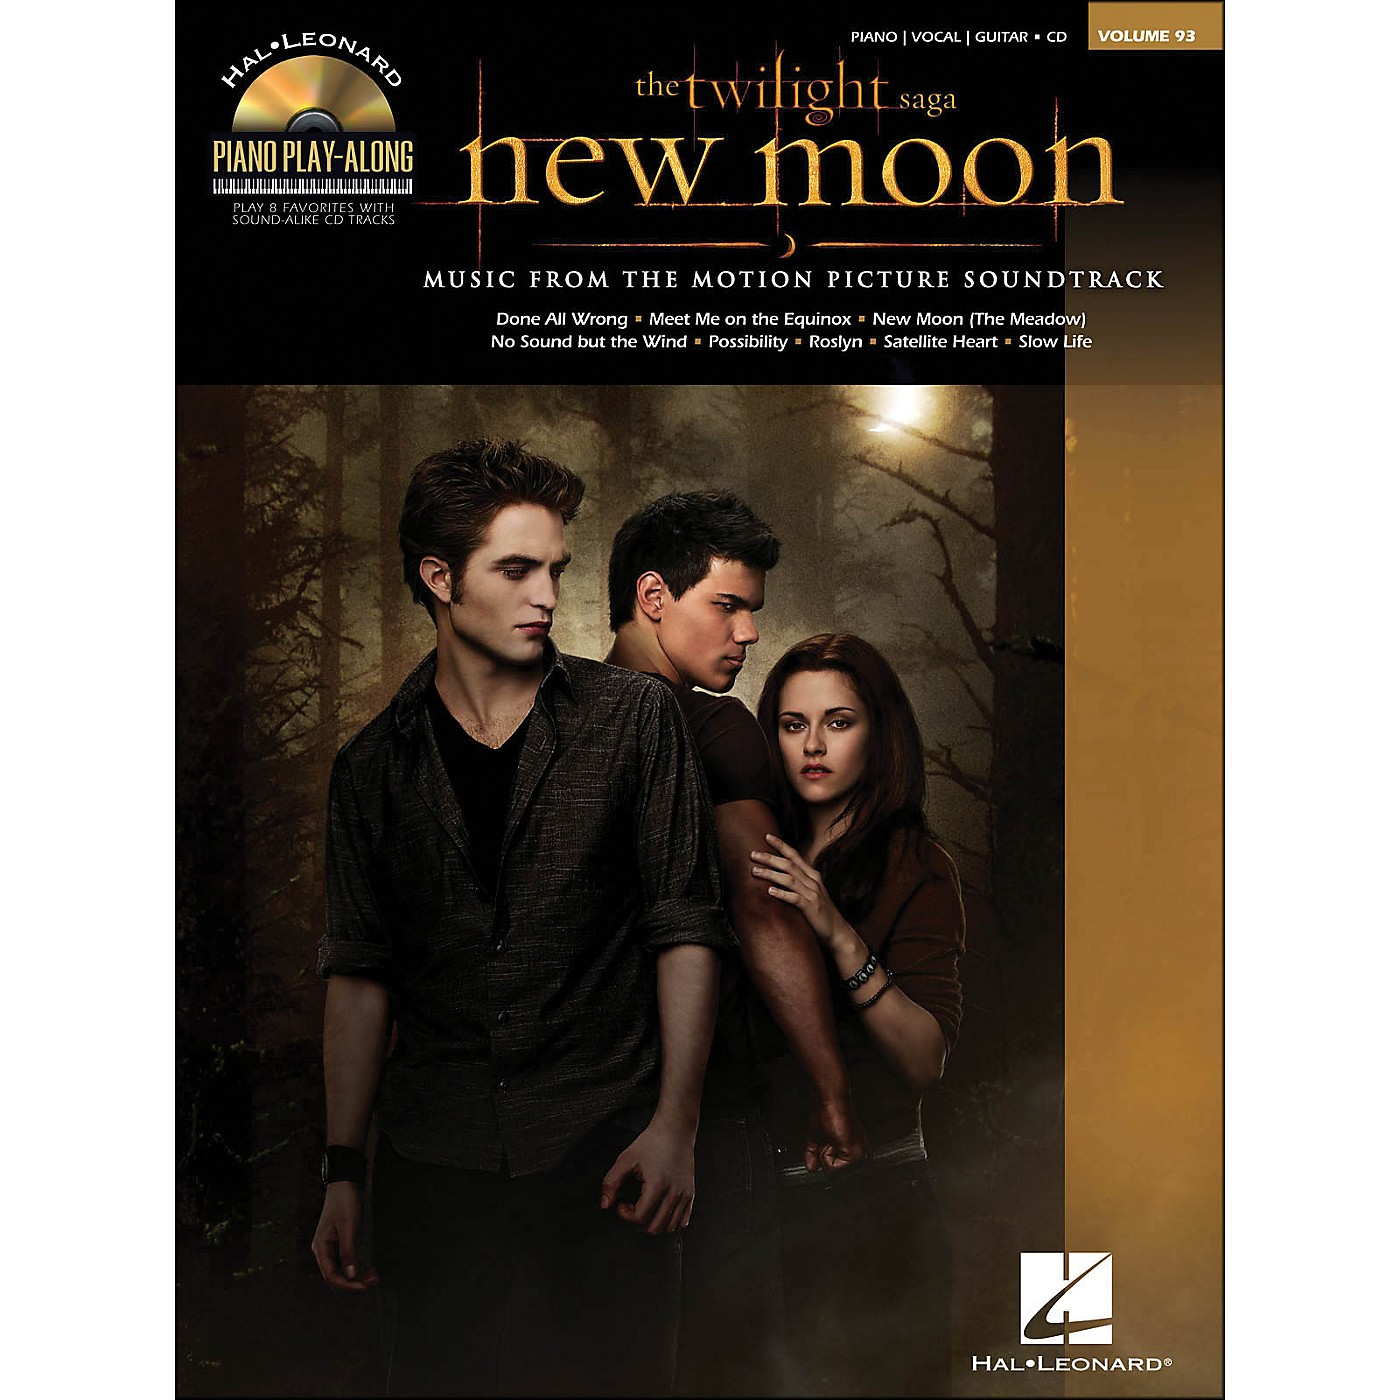 Hal Leonard Twilight: New Moon Music From The Soundtrack Book/CD Piano Play-Along Volume 93 arranged for piano, vocal, and guitar (P/V/G) thumbnail